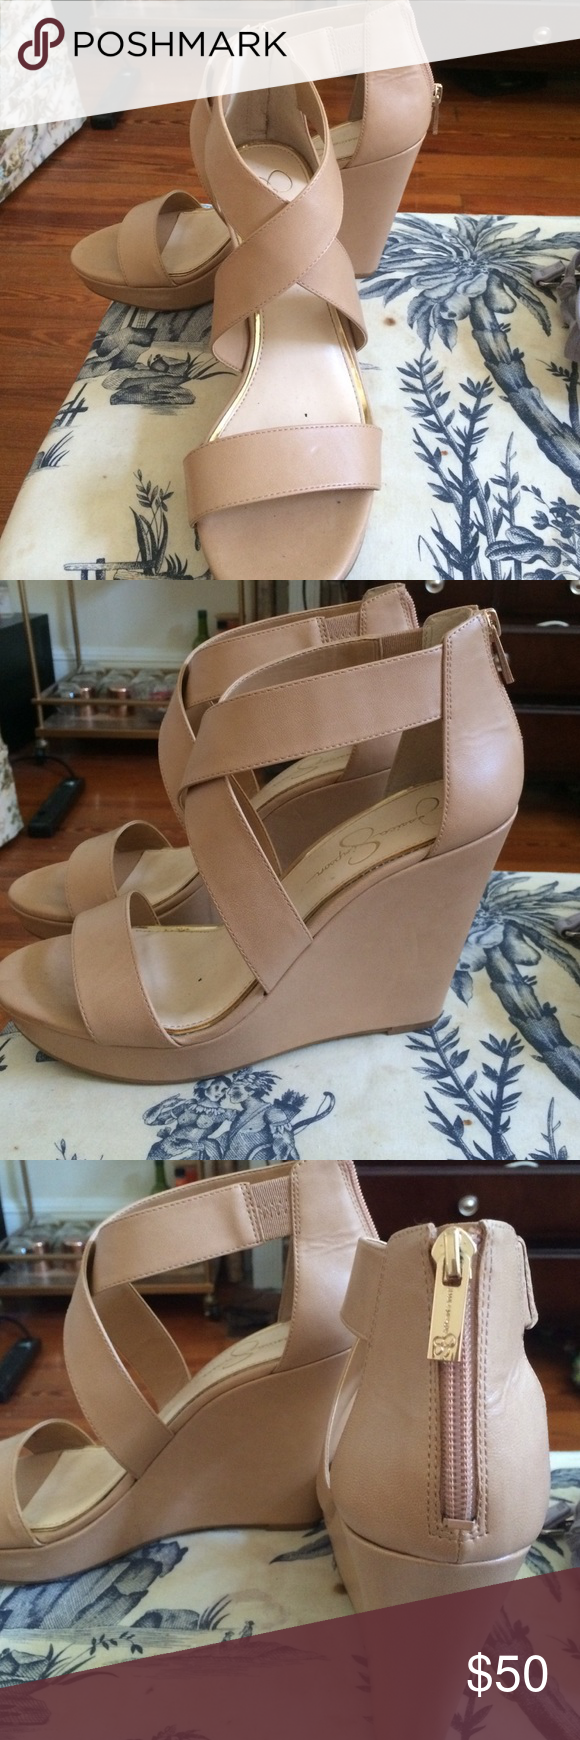 5404eea7e867 Jessica simpson nude wedges nude wedges with gold zippers on the back jessica  simpson shoes wedges